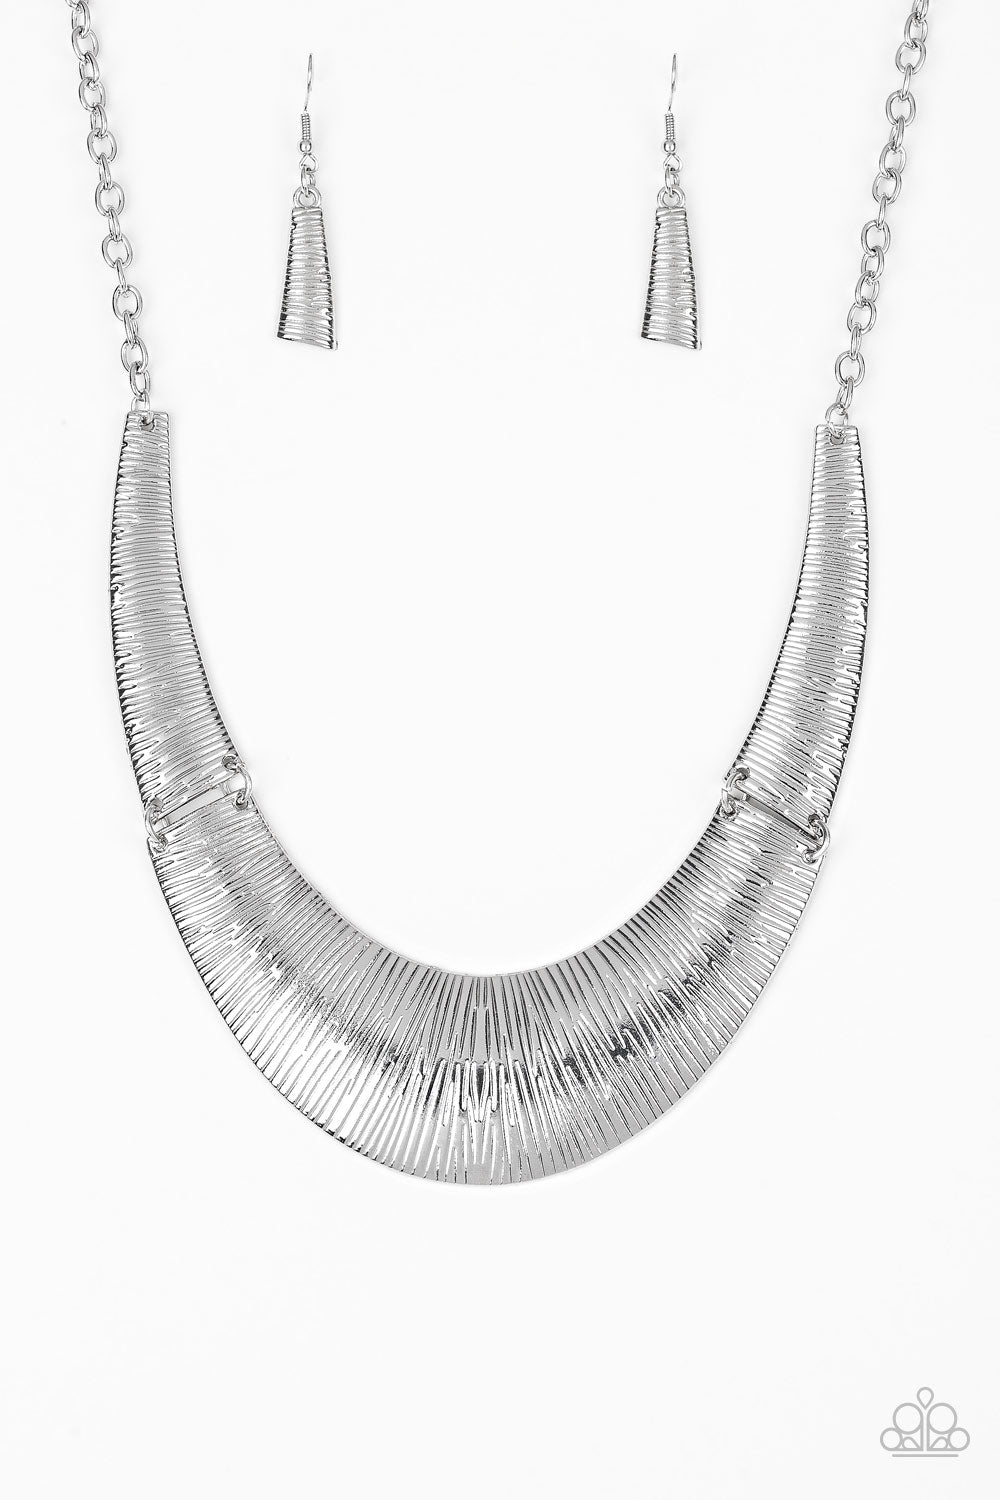 Paparazzi Accessories - Paparazzi Necklace - Feast or Famine - Silver - Necklaces